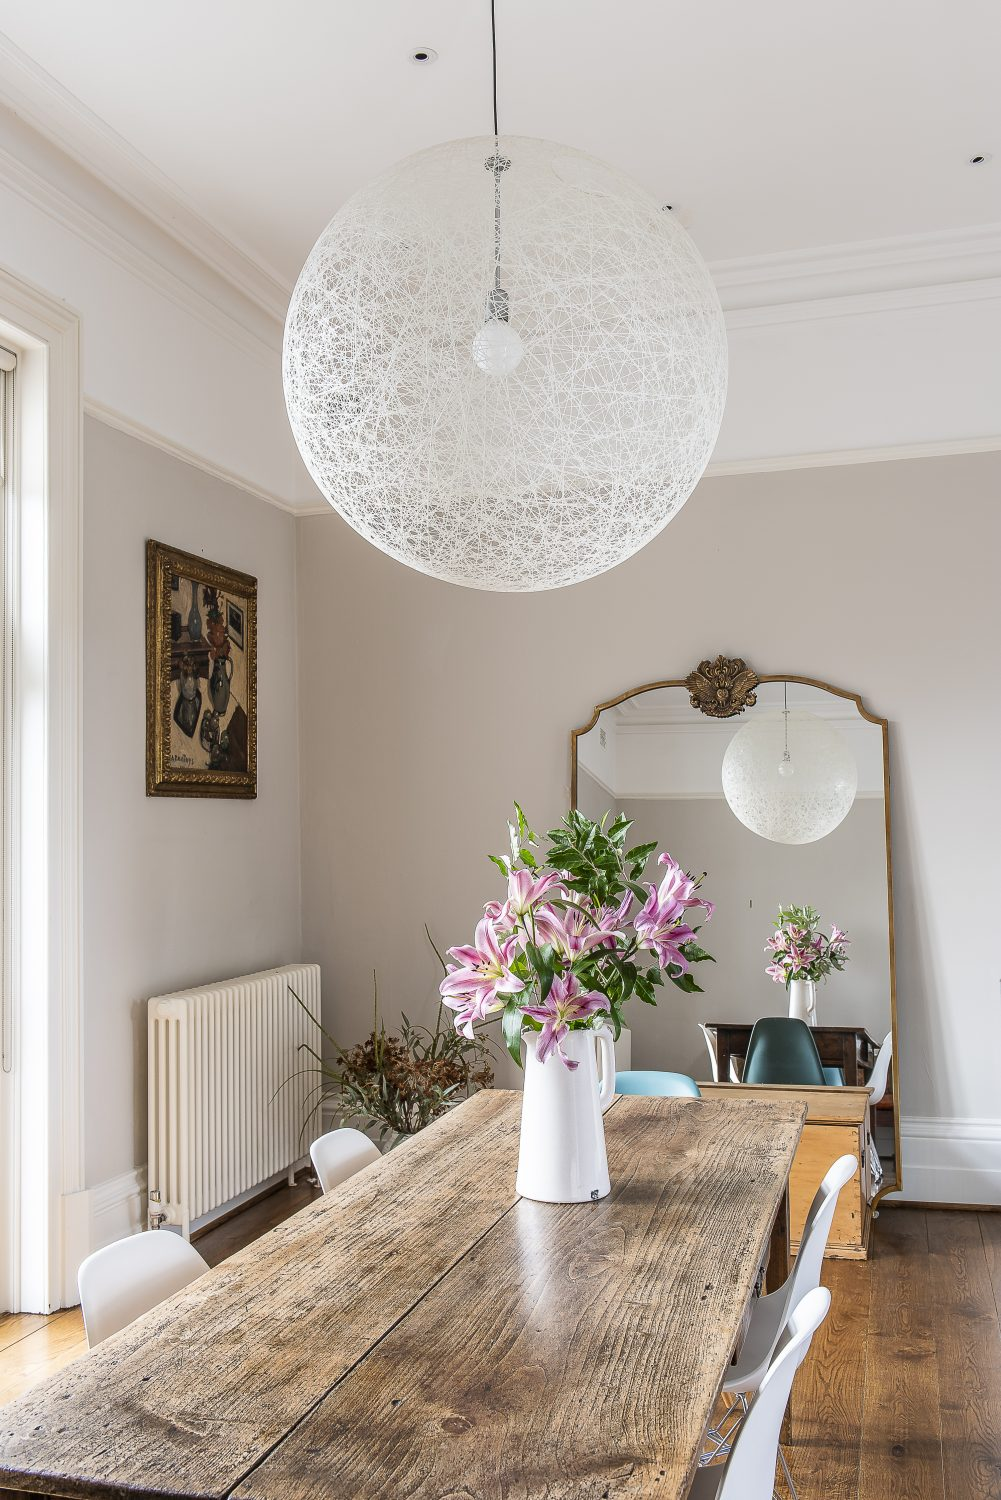 In the dining area, Olya has combined a Balinese bench, an antique oak dining table and a Moooi spherical pendant